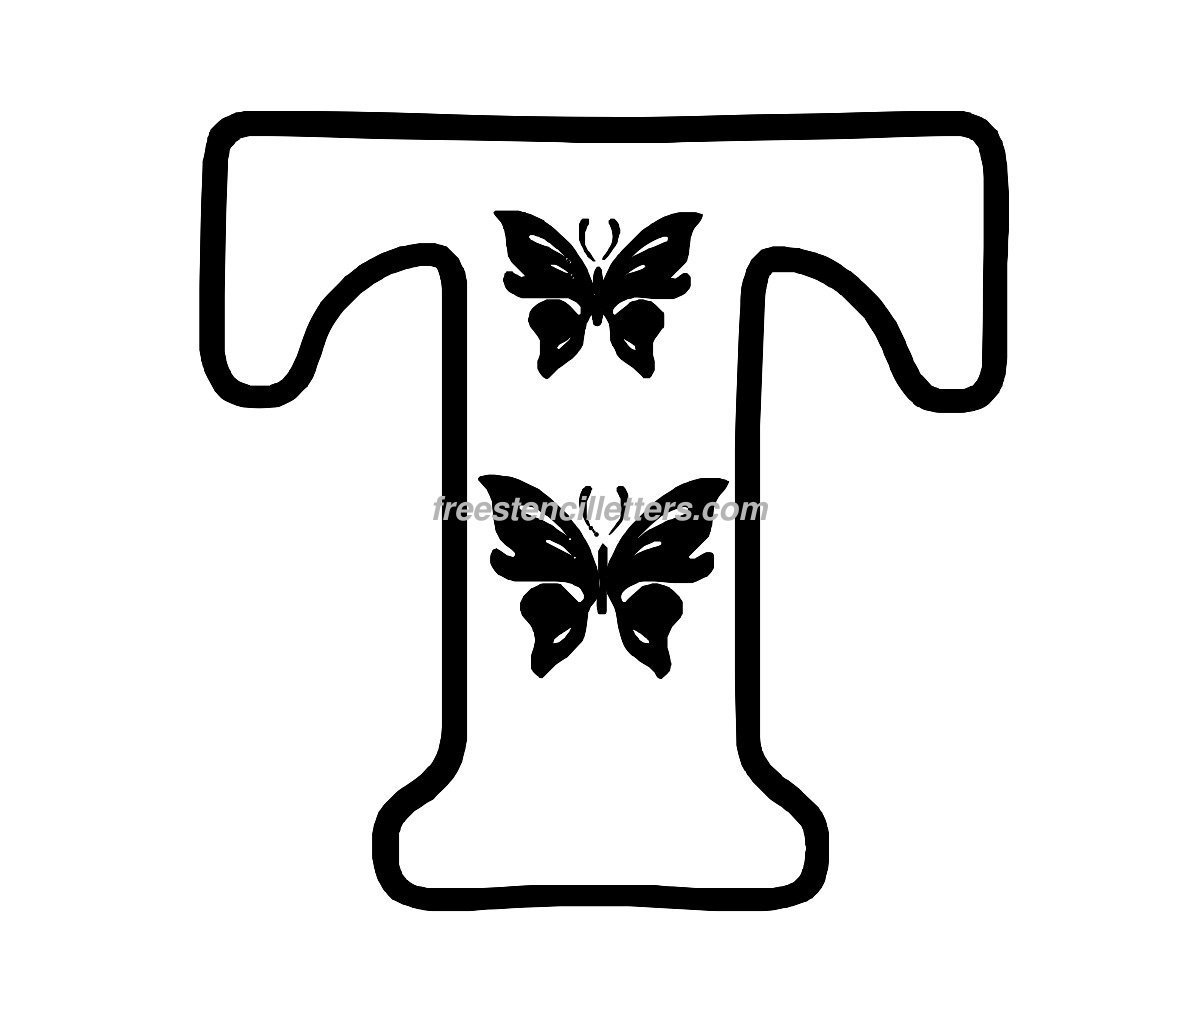 Butterfly stencil letters archives free stencil letters print t letter stencil spiritdancerdesigns Gallery